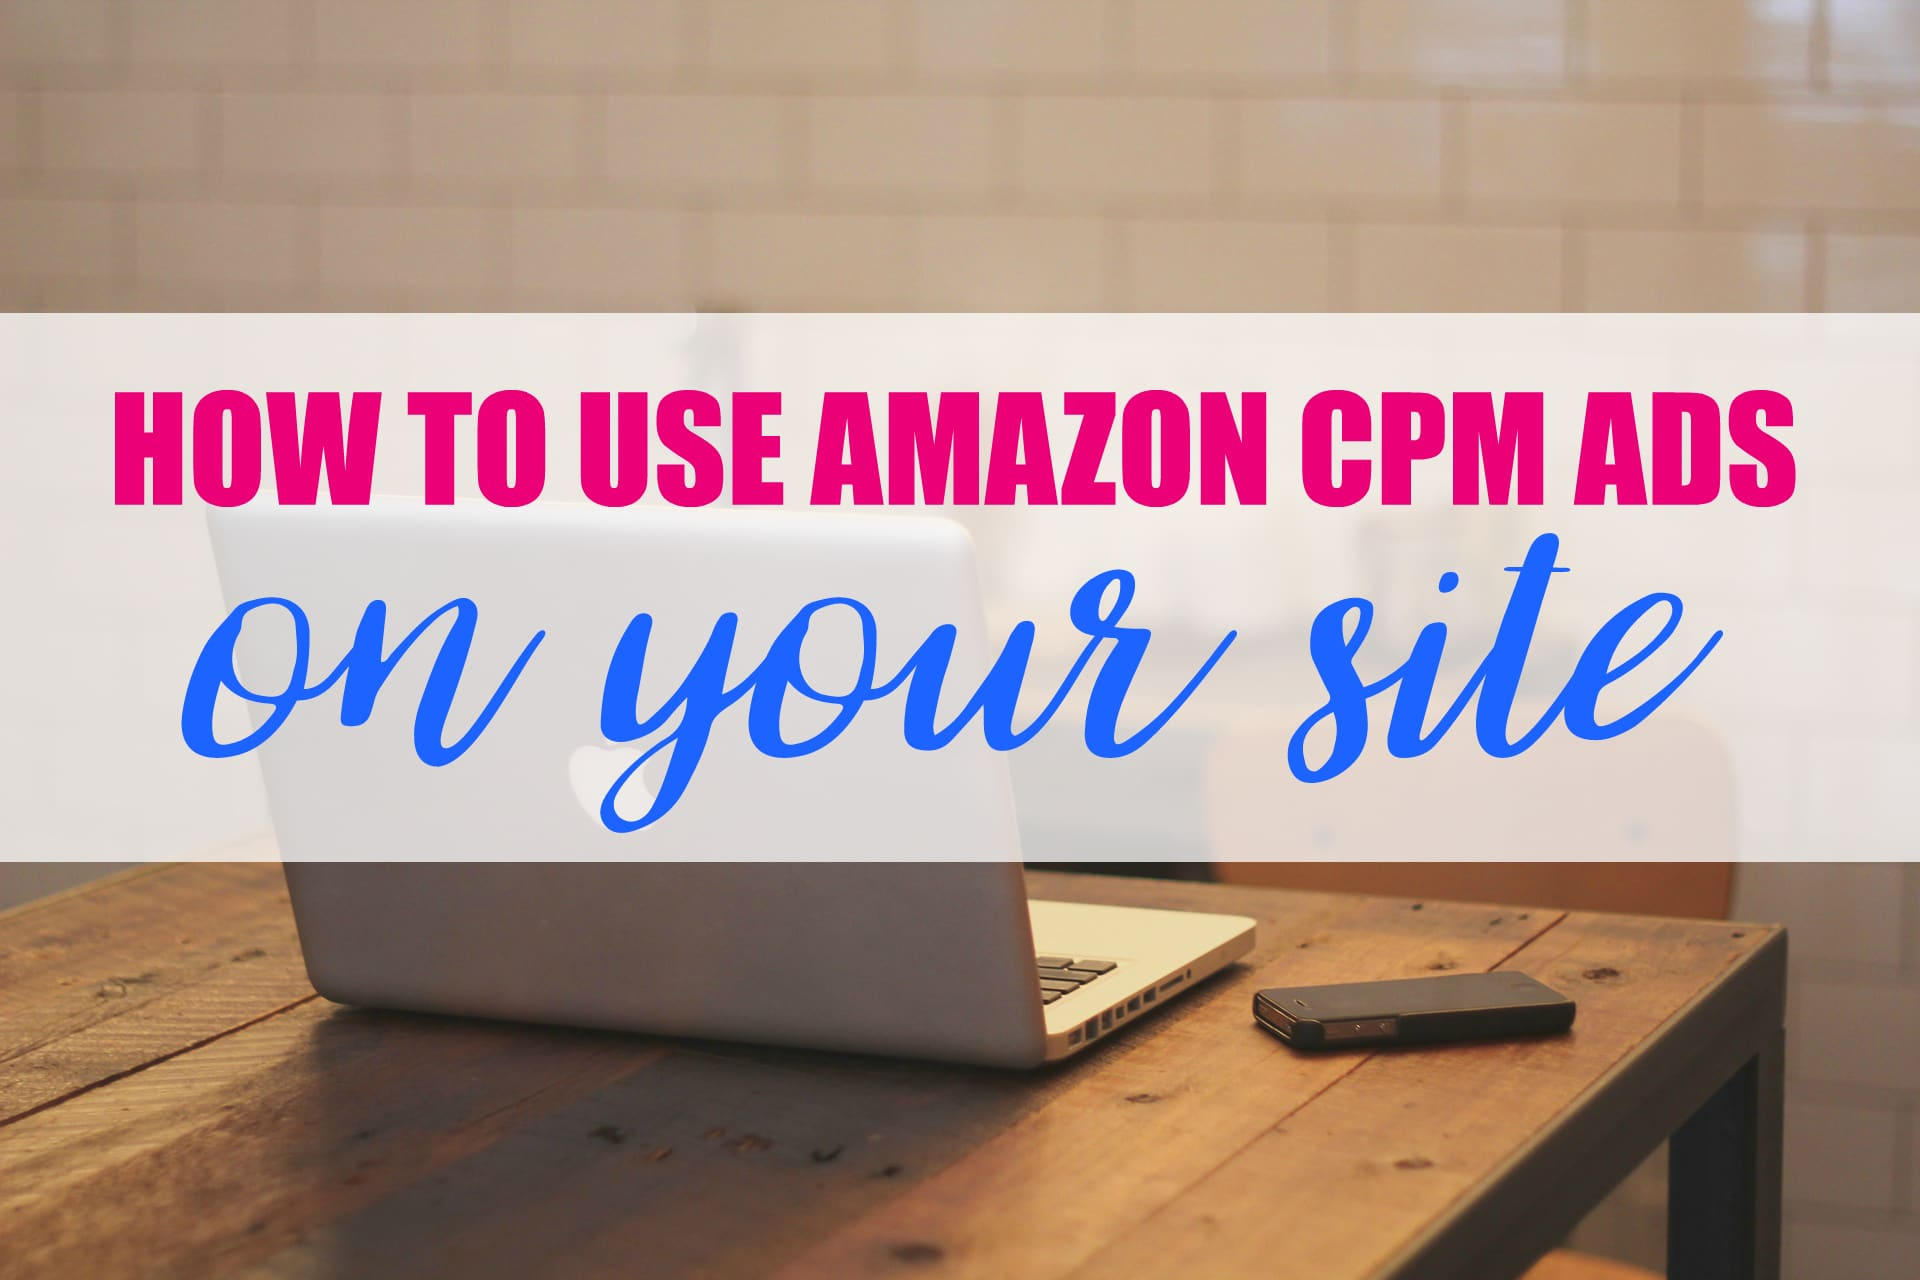 How to Use Amazon CPM Ads on Your Site